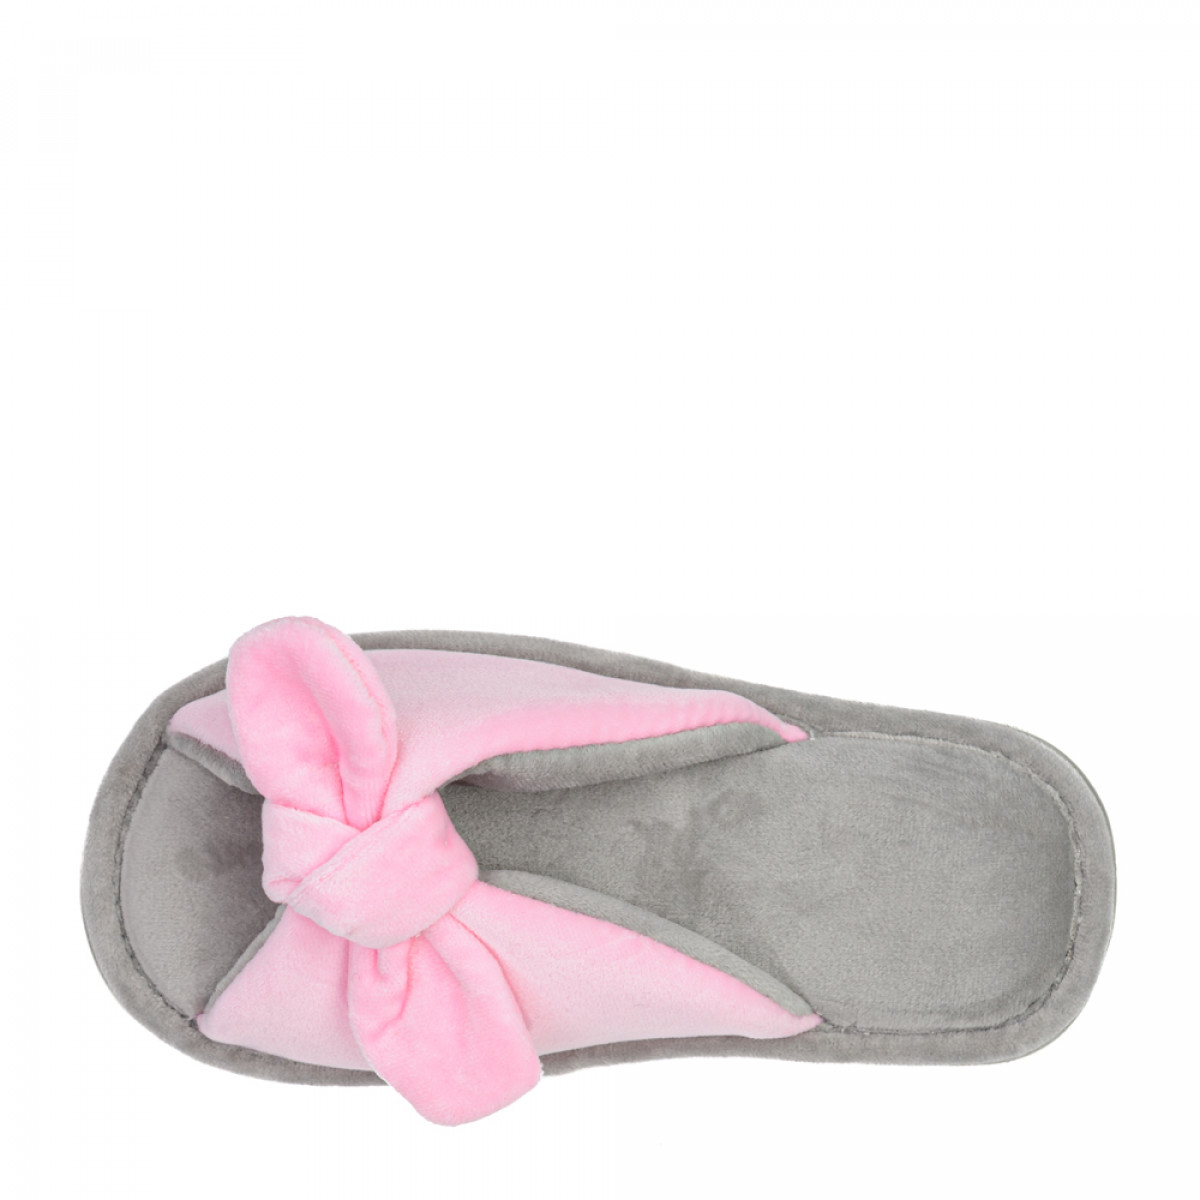 Kid's home slippers BUNNY, Pink / gray